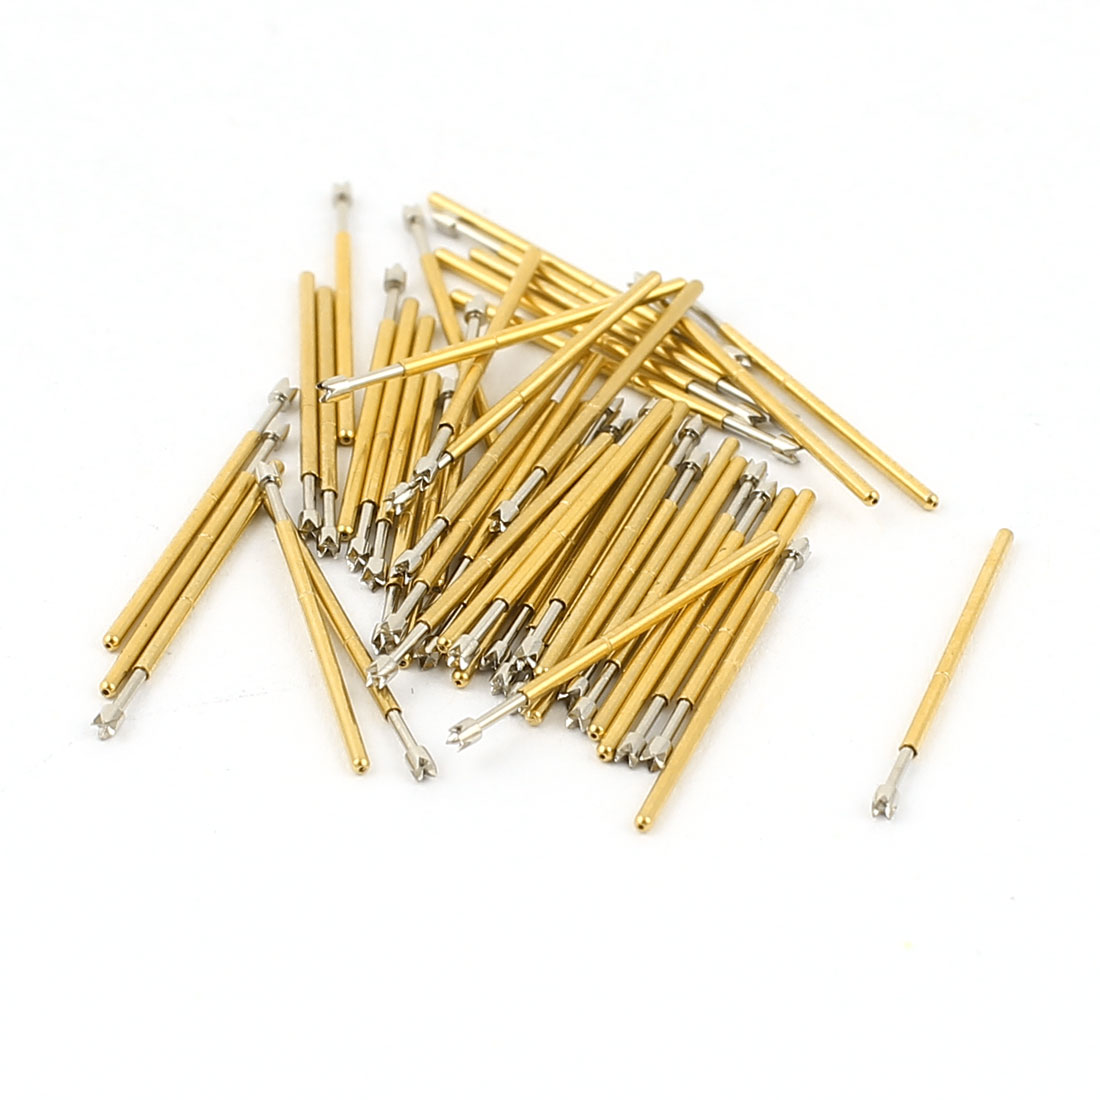 50 Pcs P50-Q2 0.9mm 4-Point Crown Tip Spring Testing Probes Pin